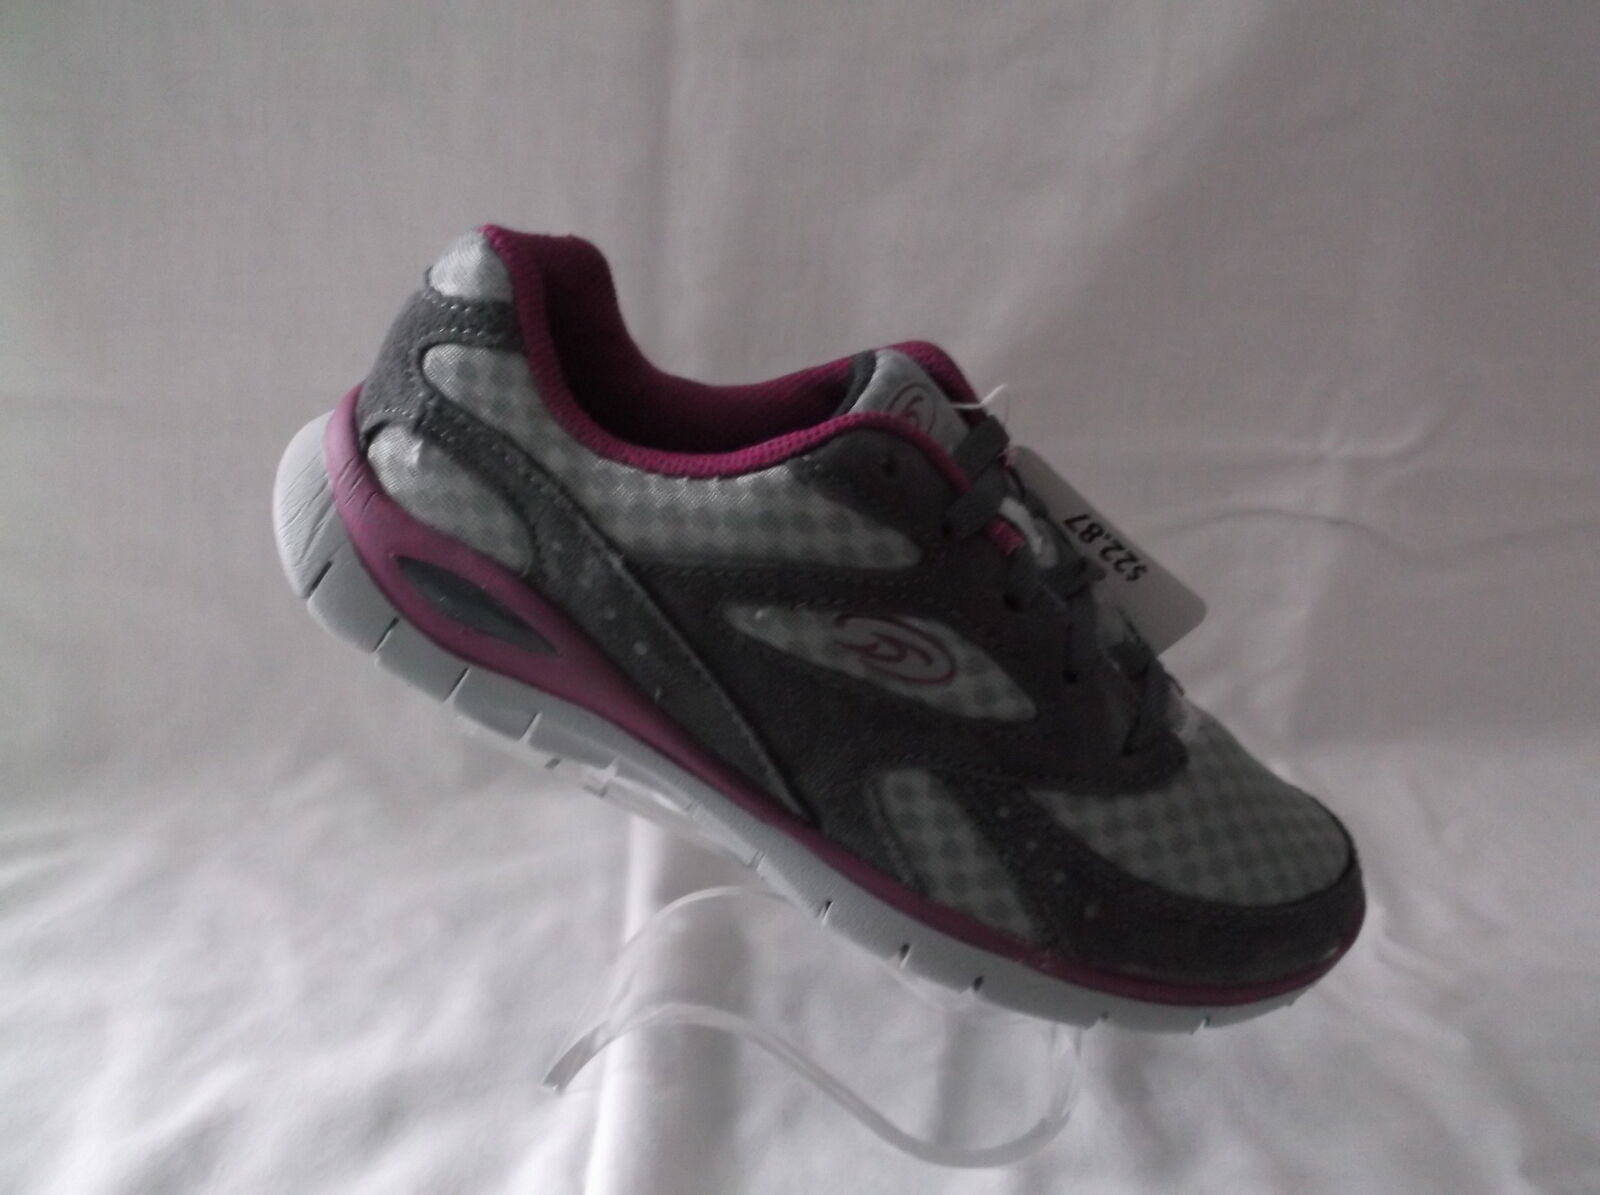 DR SCHOLL'S (SHIRLEY) WOMENS GEL INNERSOLE ATHLETIC BOX SHOE GRAYS NEW IN BOX ATHLETIC 9b2c71